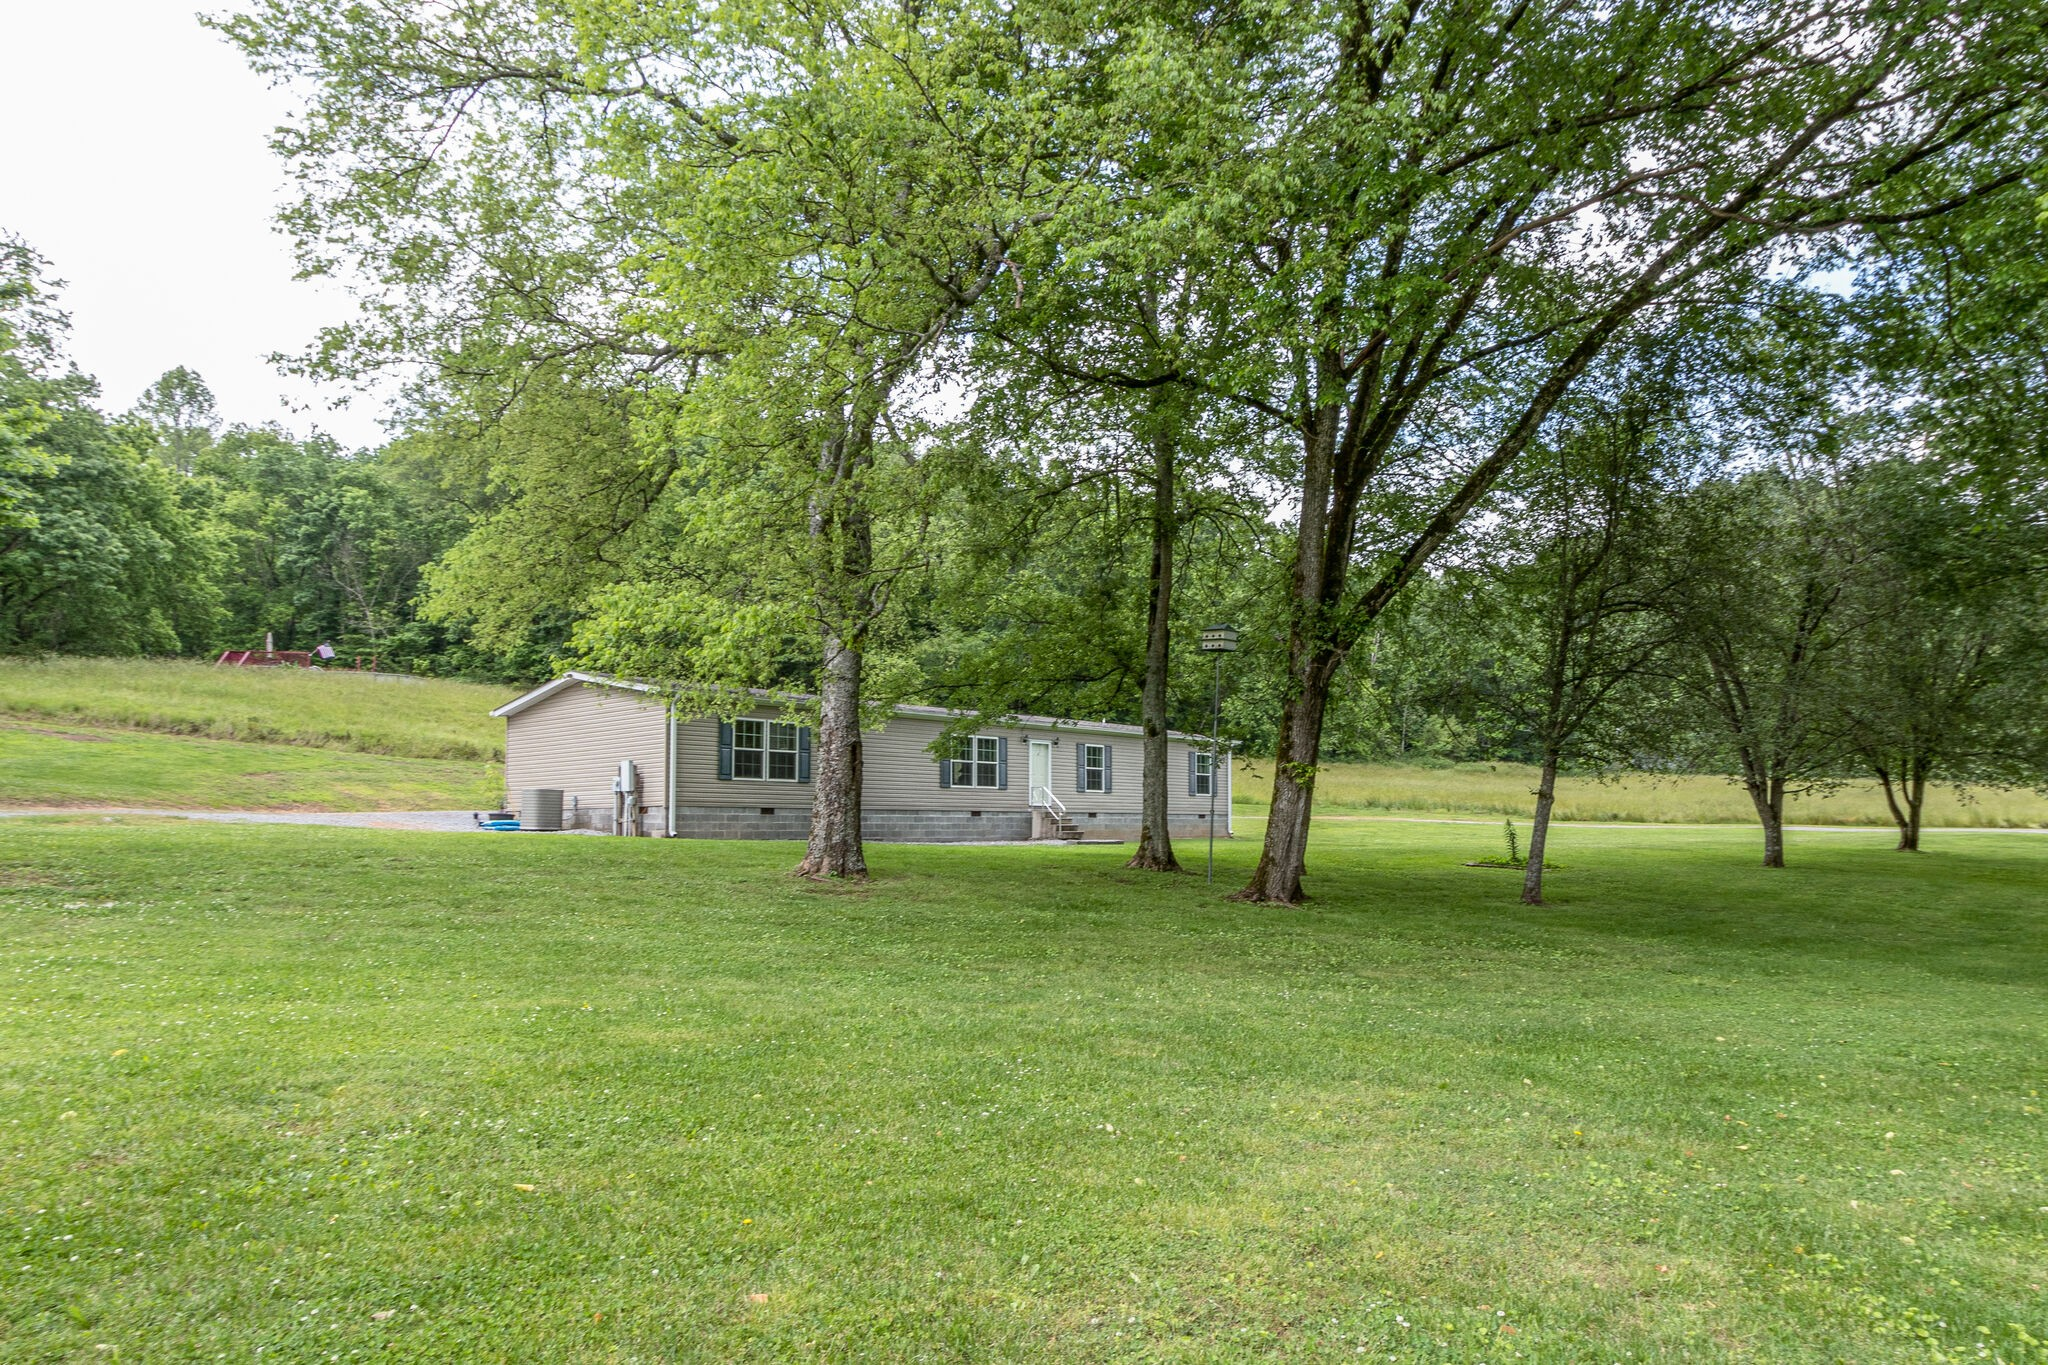 2234 Petty Gap Rd, Woodbury, TN 37190 - Woodbury, TN real estate listing